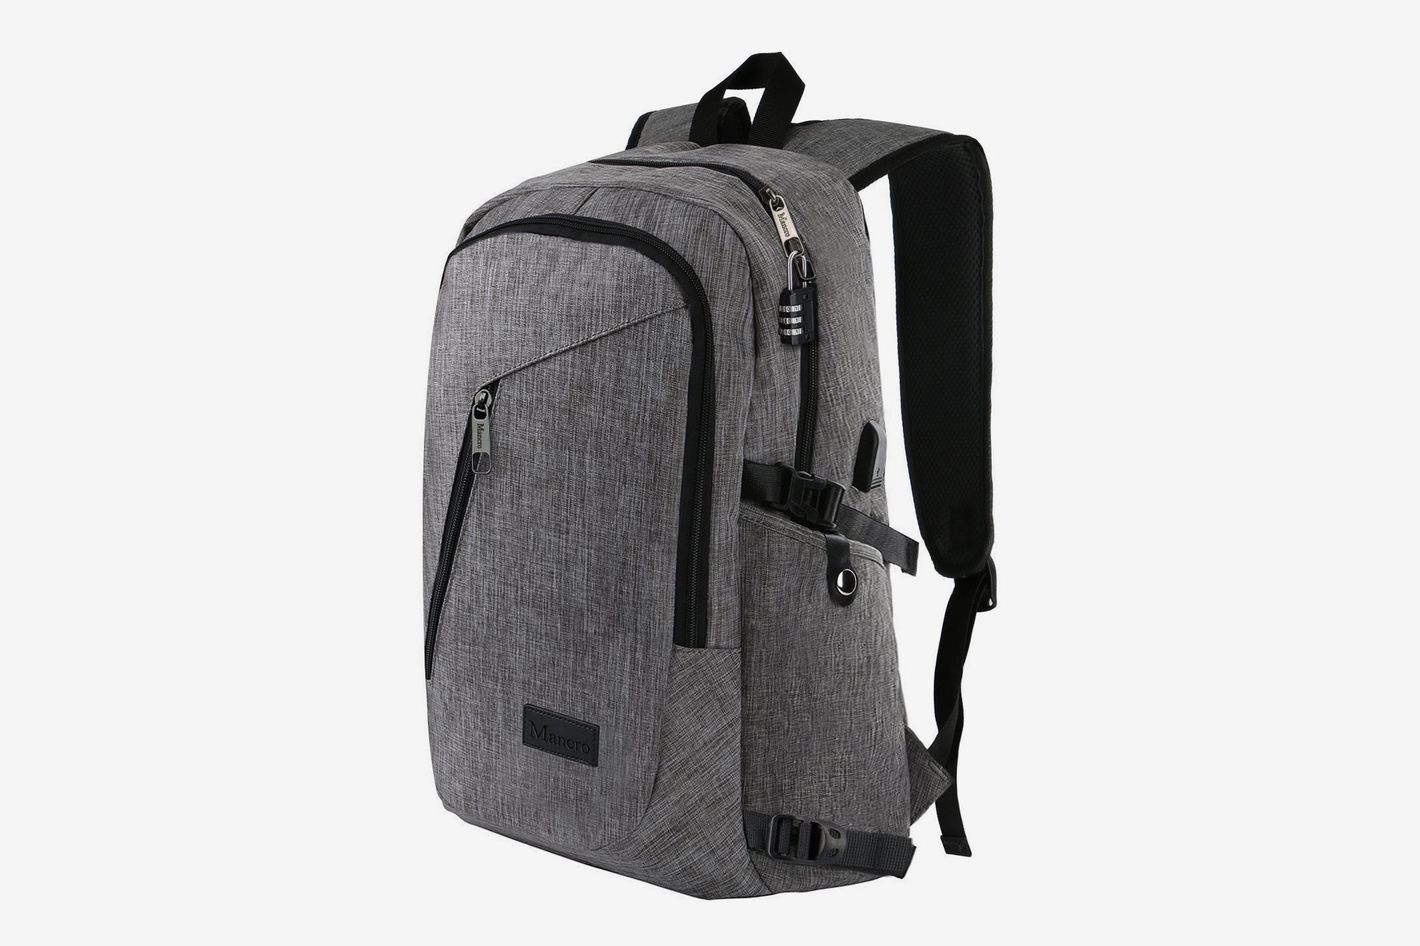 7fa59a7e5471 For high-school students. Mancro Laptop Backpack